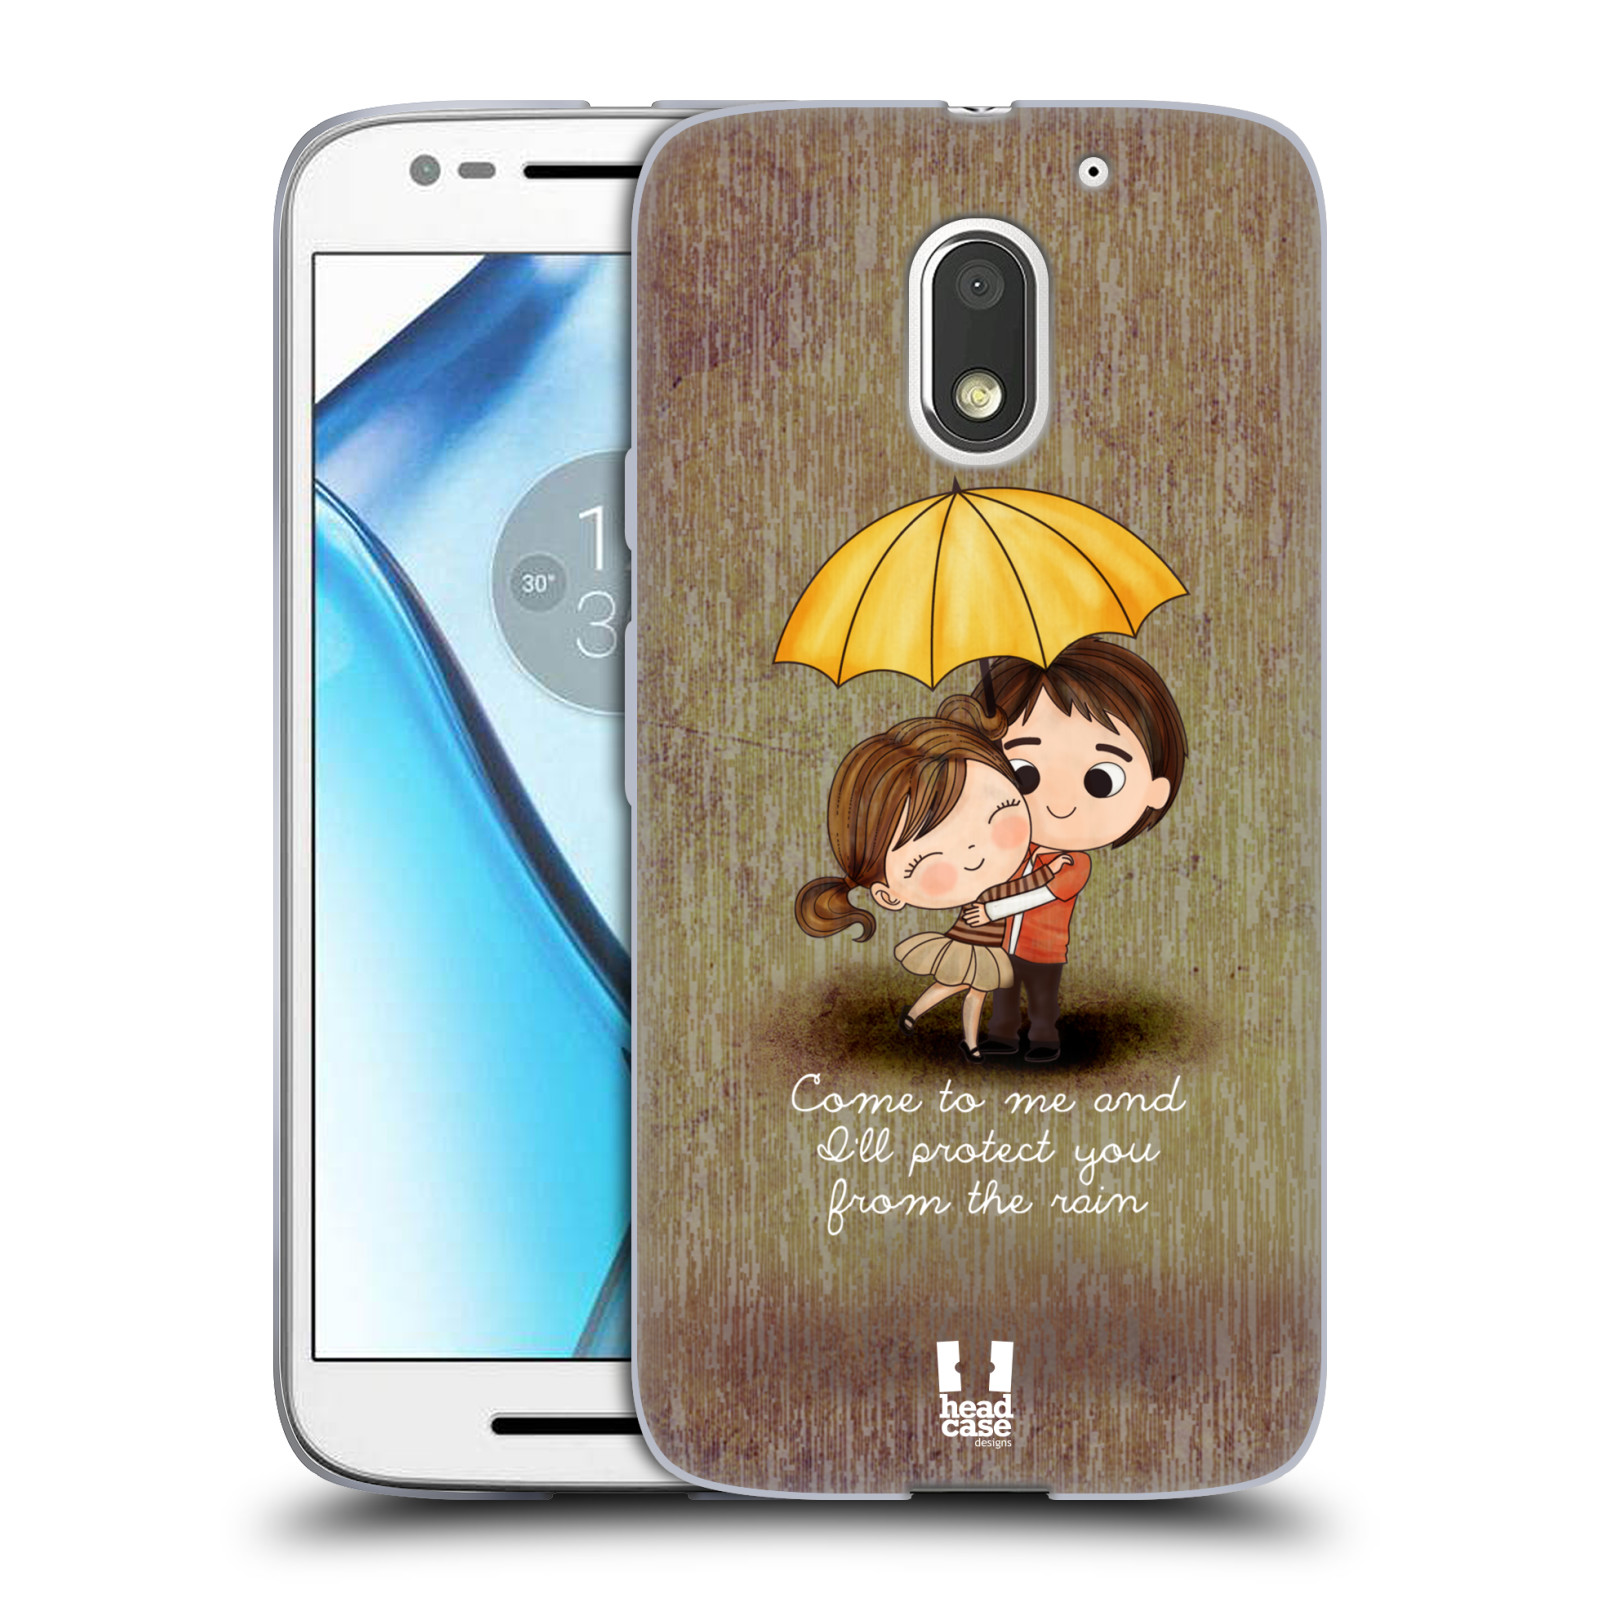 HEAD-CASE-DESIGNS-CUTE-EMO-LOVE-SOFT-GEL-CASE-FOR-MOTOROLA-MOTO-E3